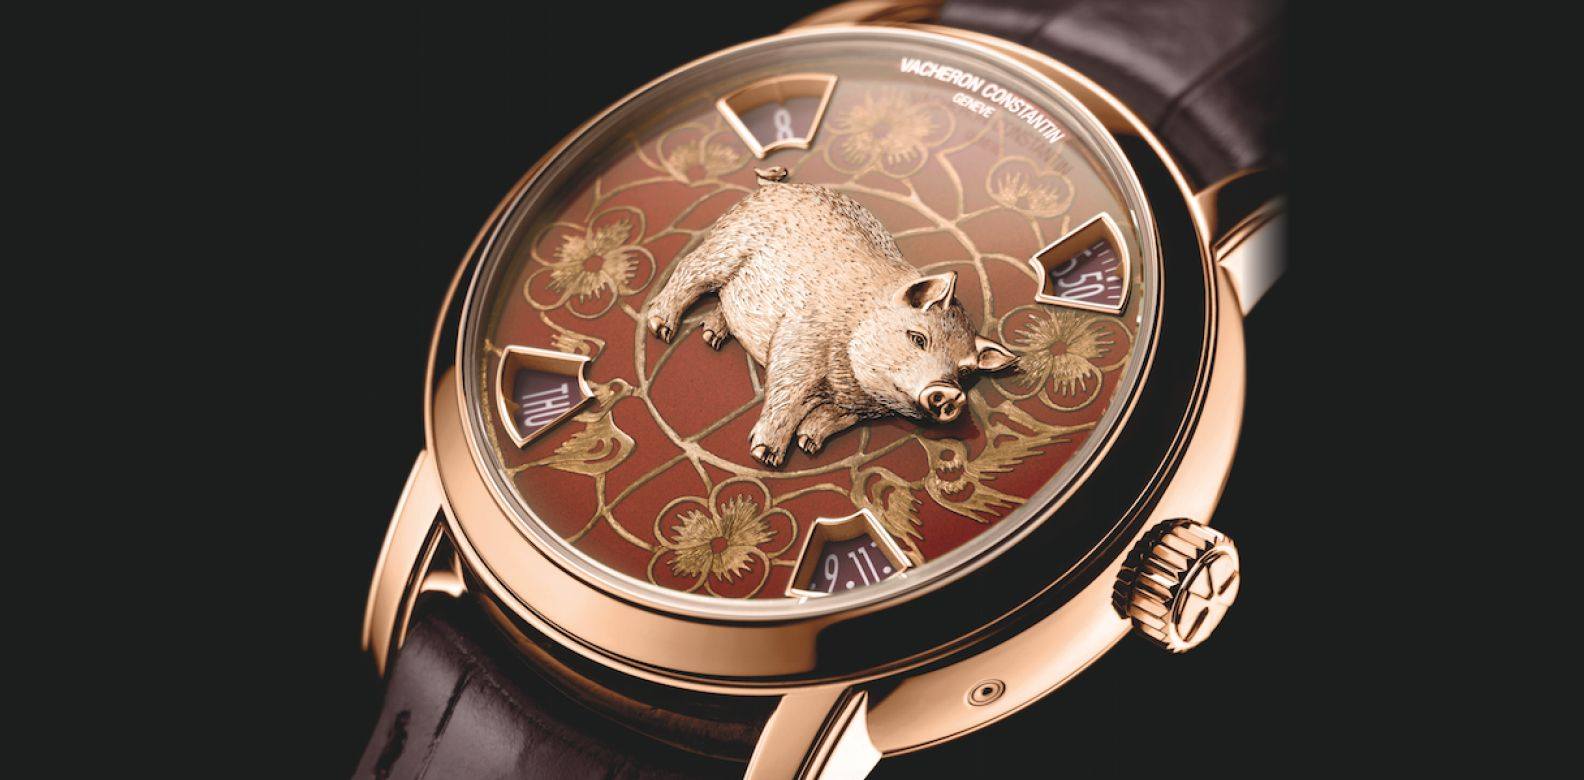 6 Luxury Watches To Welcome The Year Of The Pig